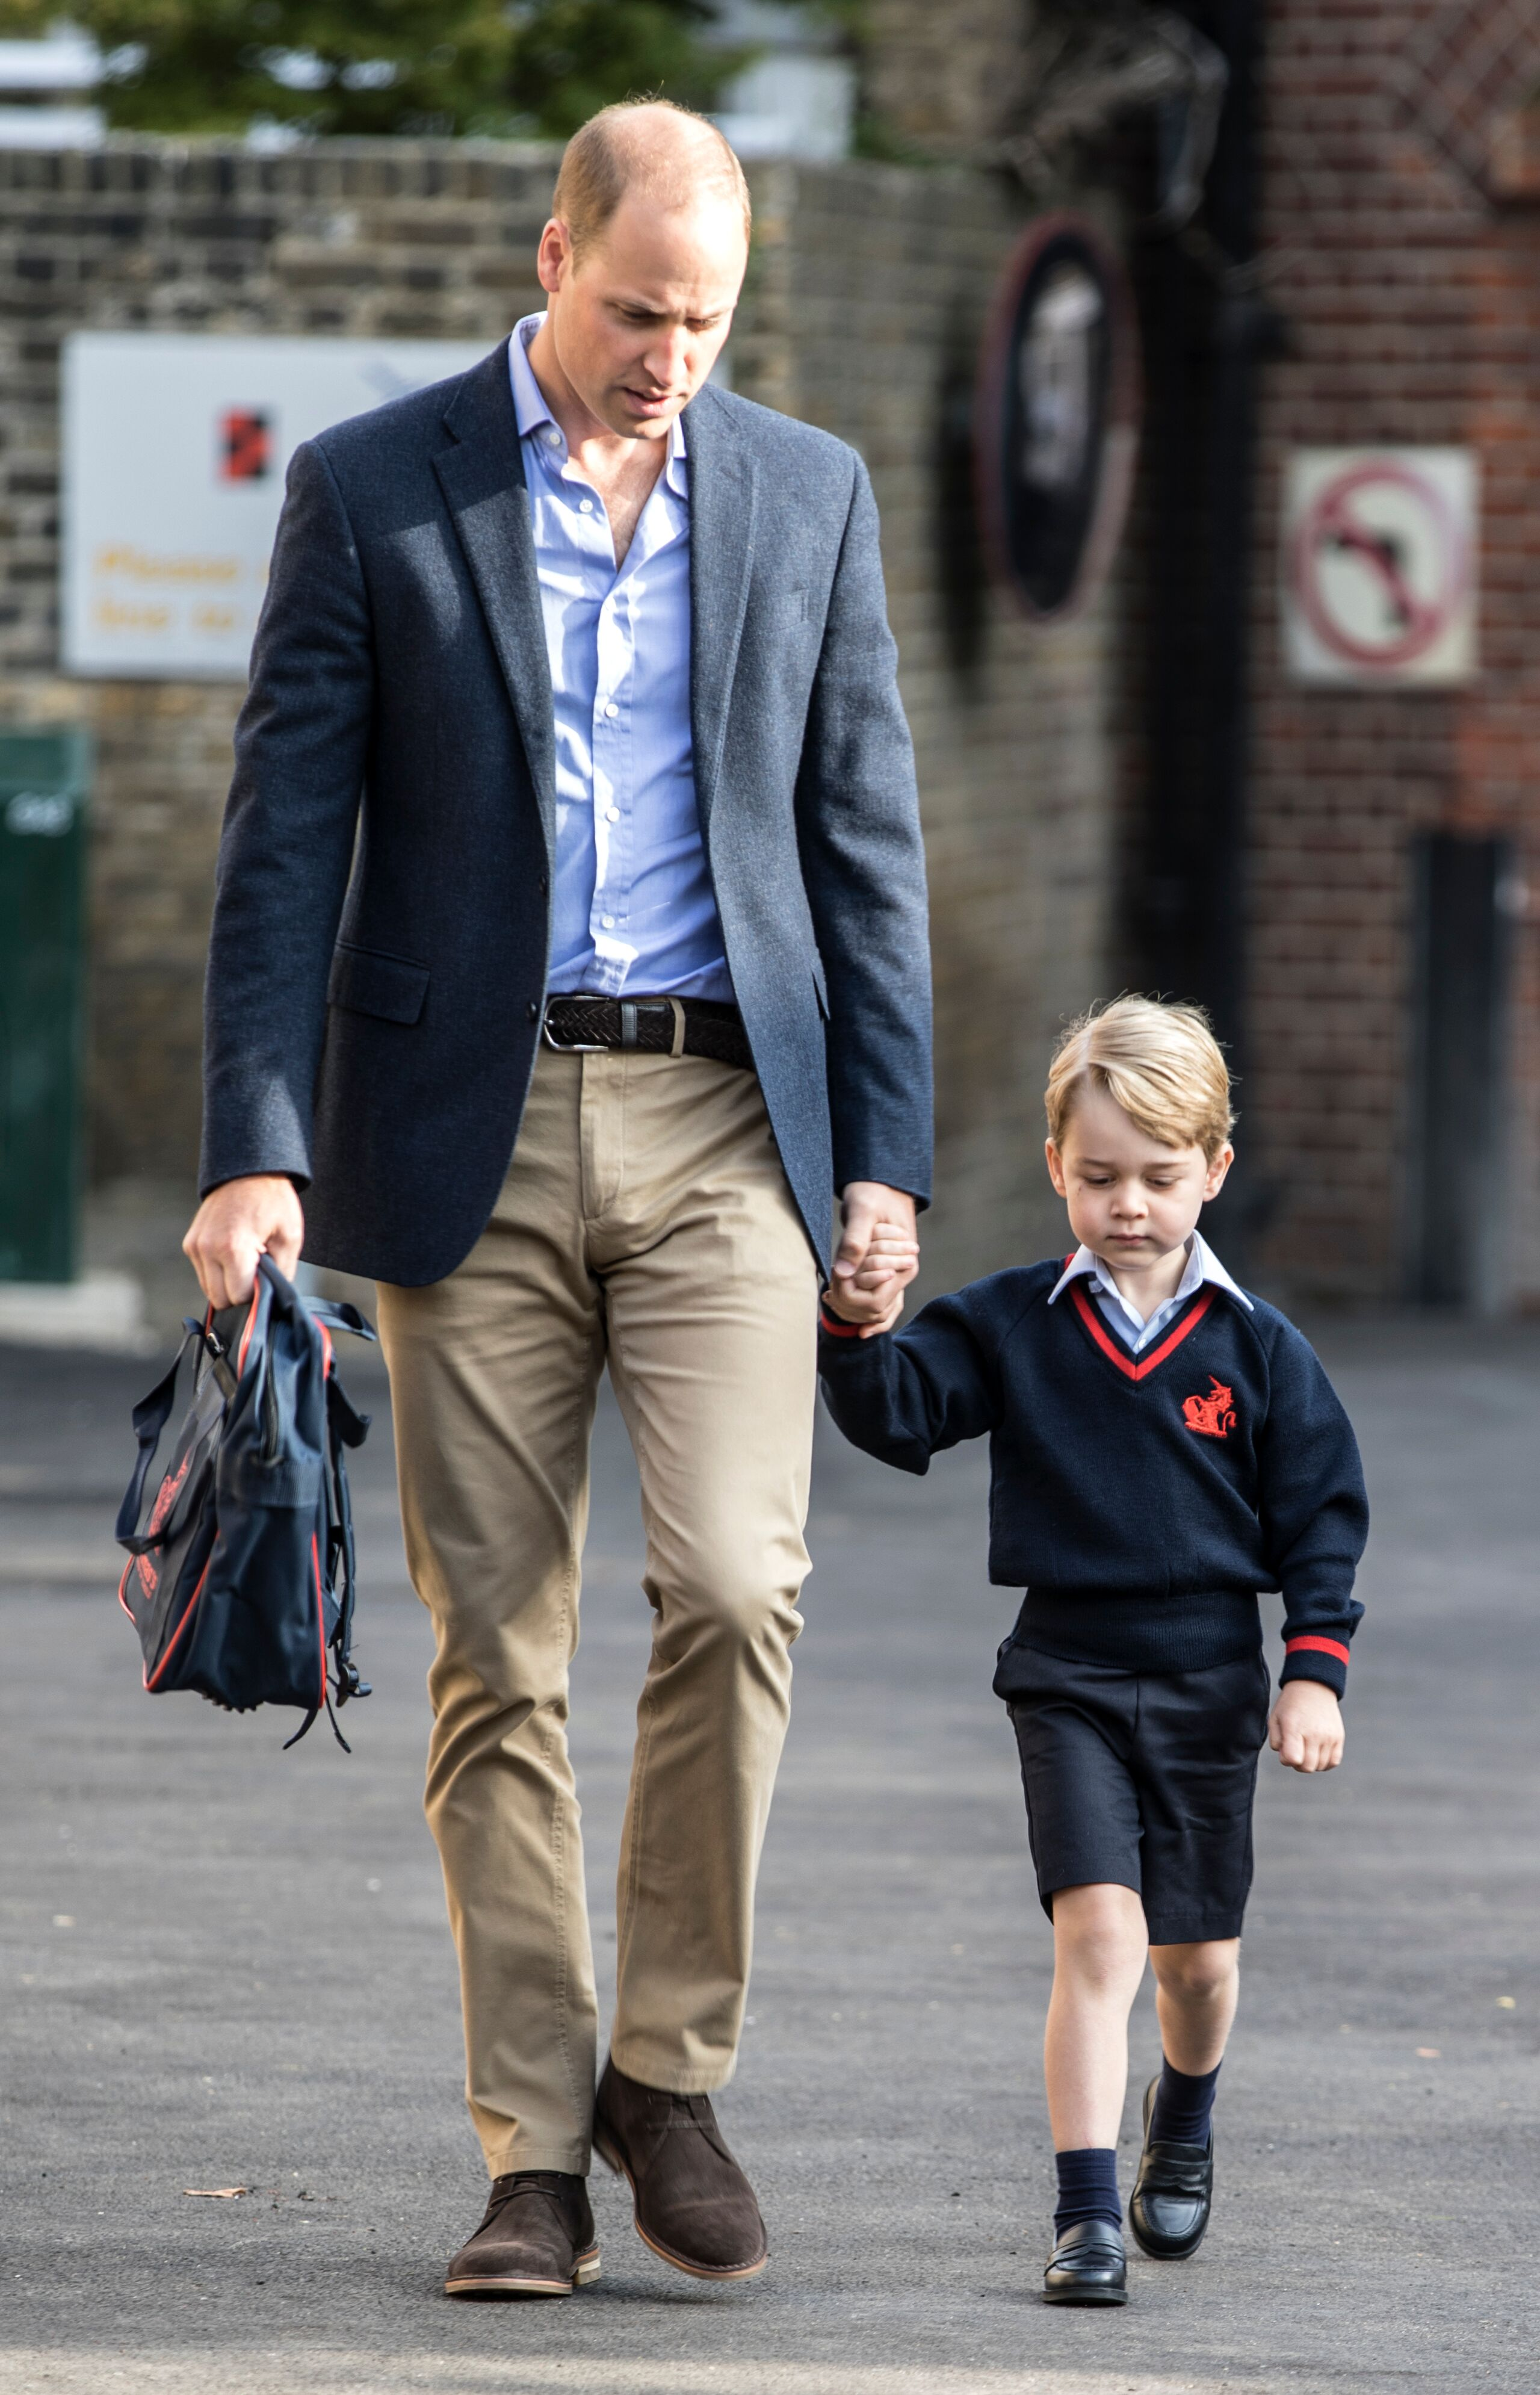 Prince George arrives for his first day of school at Thomas's Battersea with his father Prince William.   Source: Getty Images